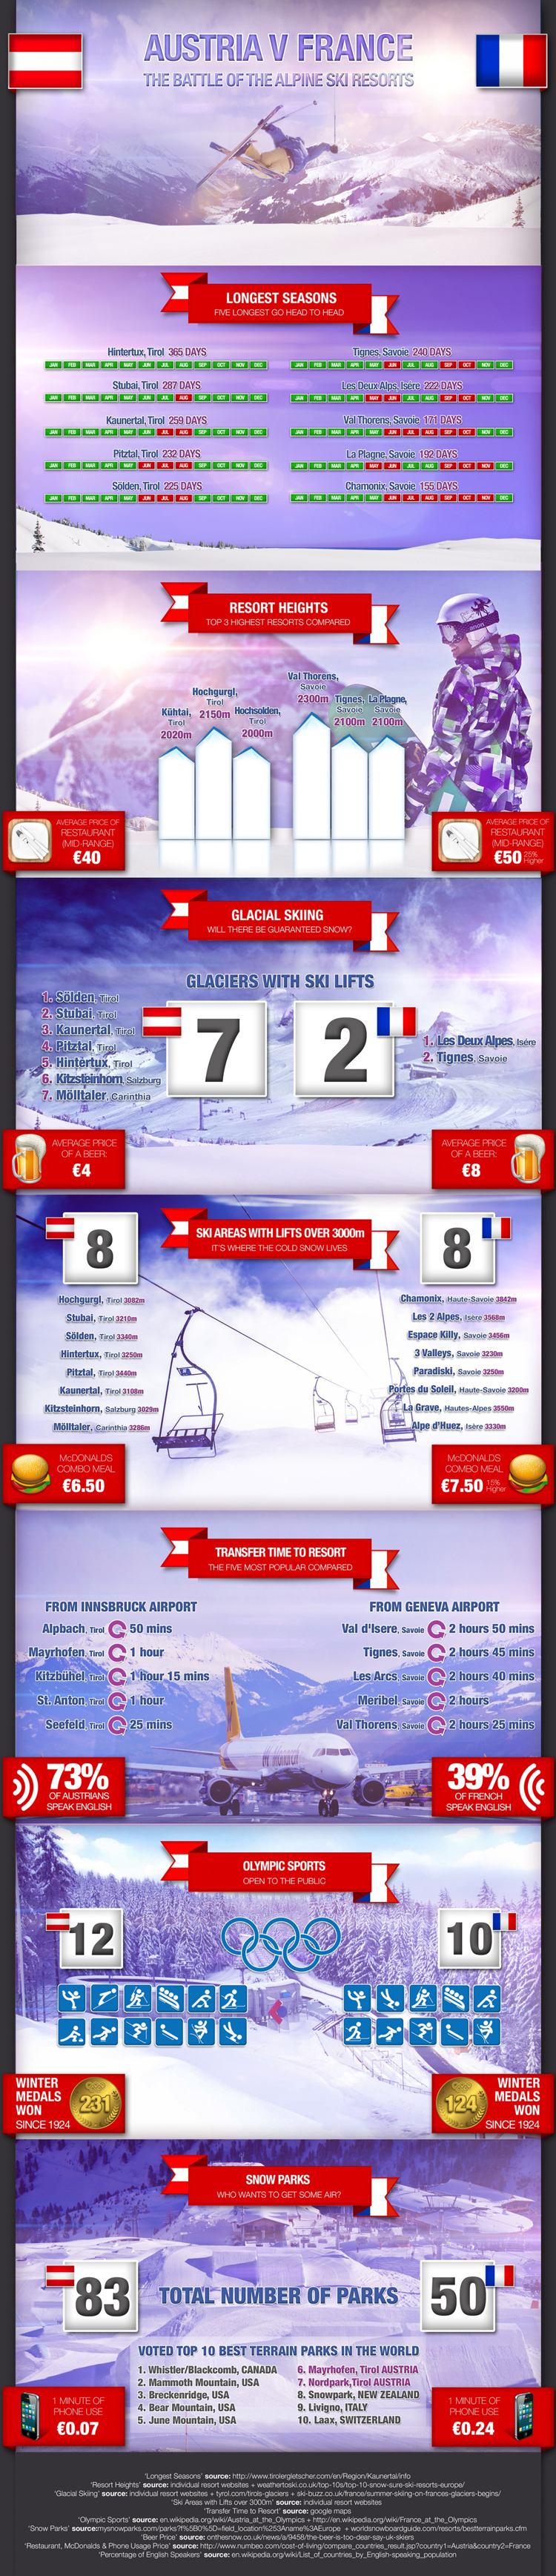 austria-v-france-how-the-skiing-and-snowboarding-stack-up_541c0ccf44db6_w750